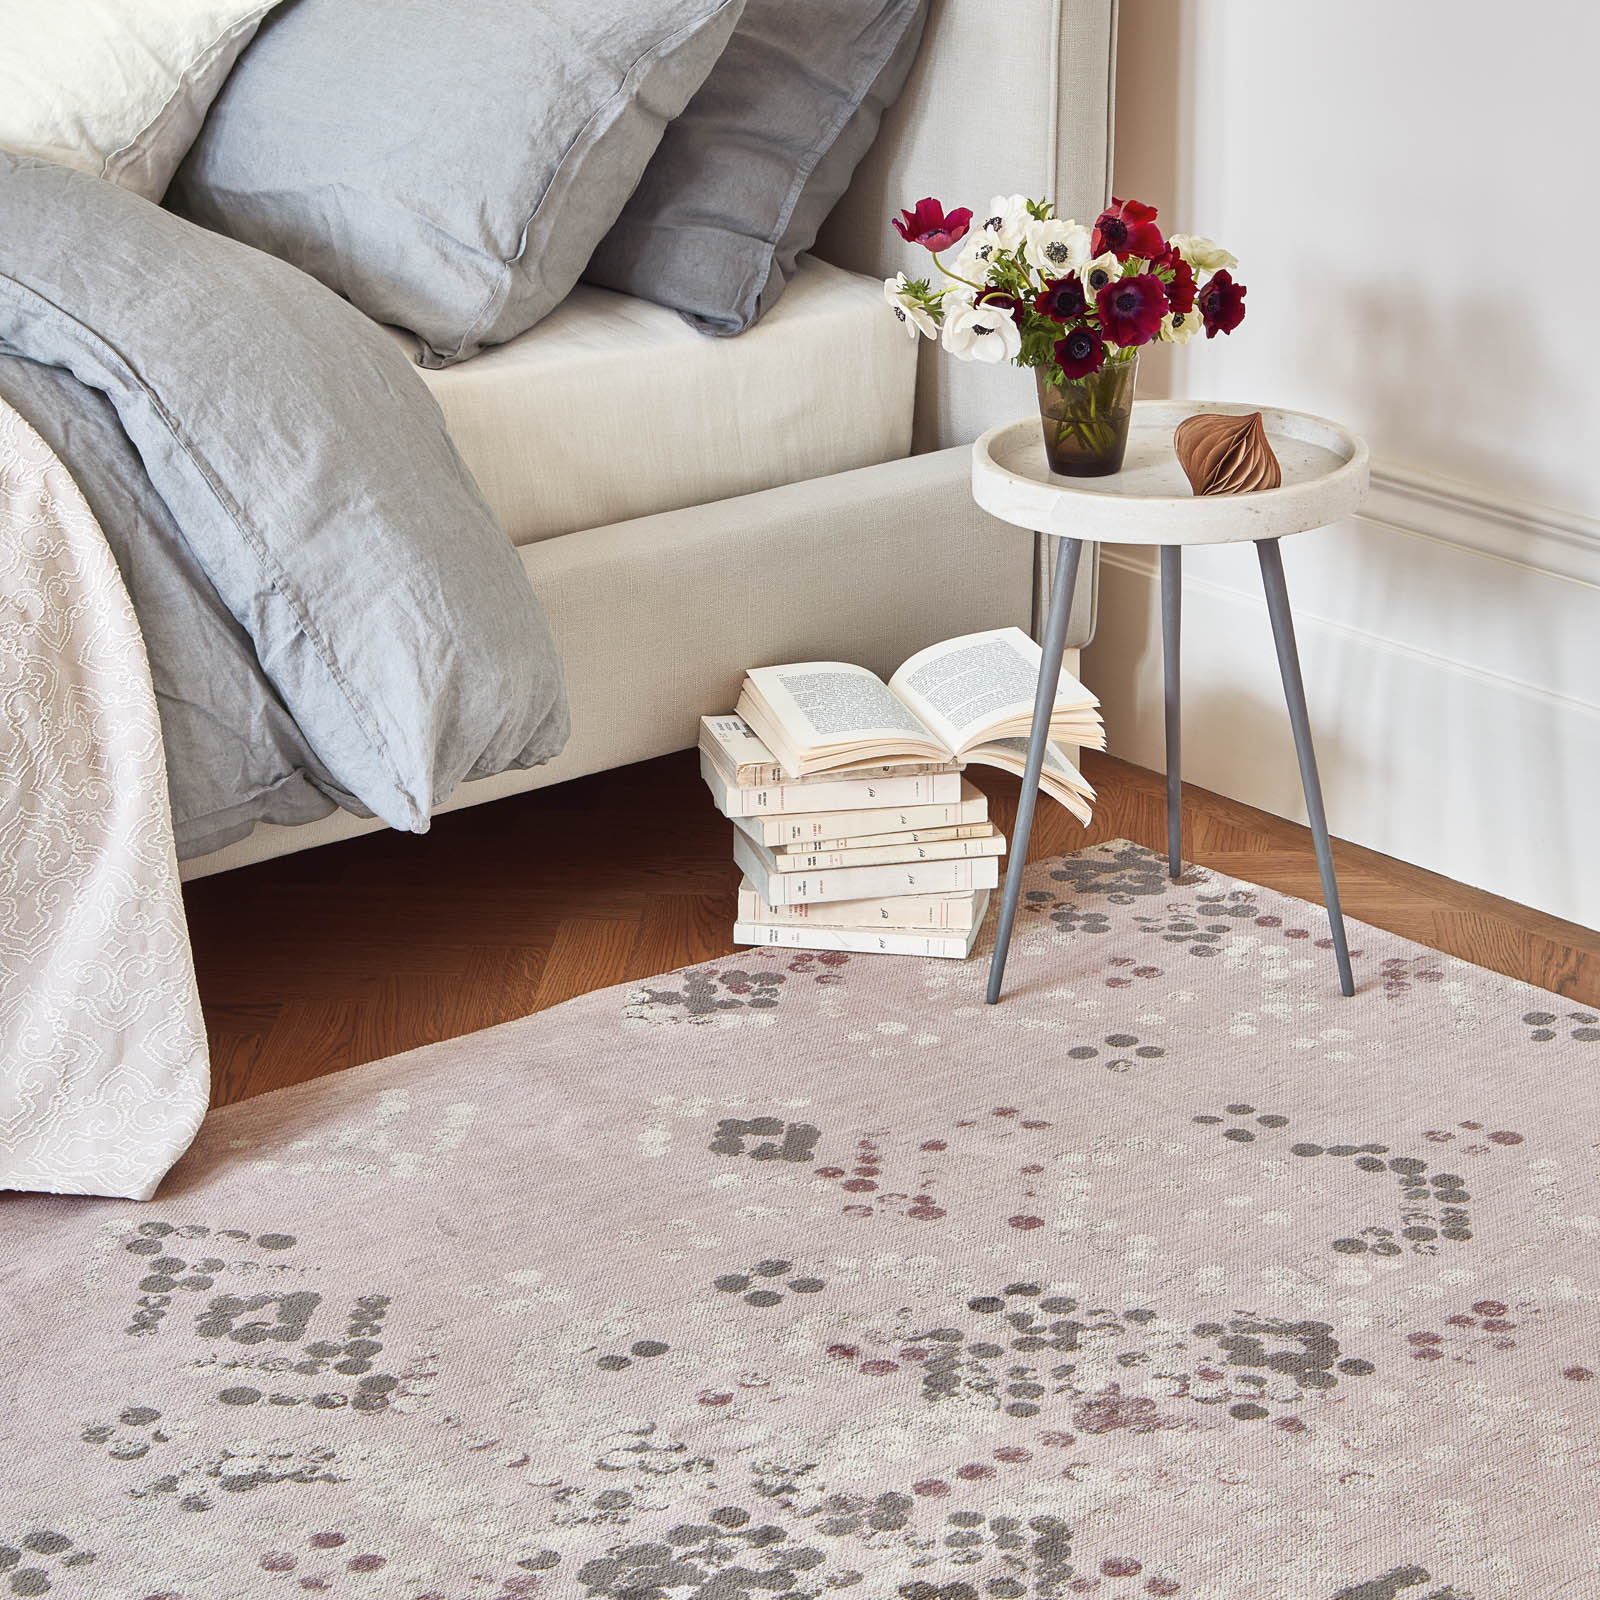 Villa Nova Marit rugs in 8760 Bramble